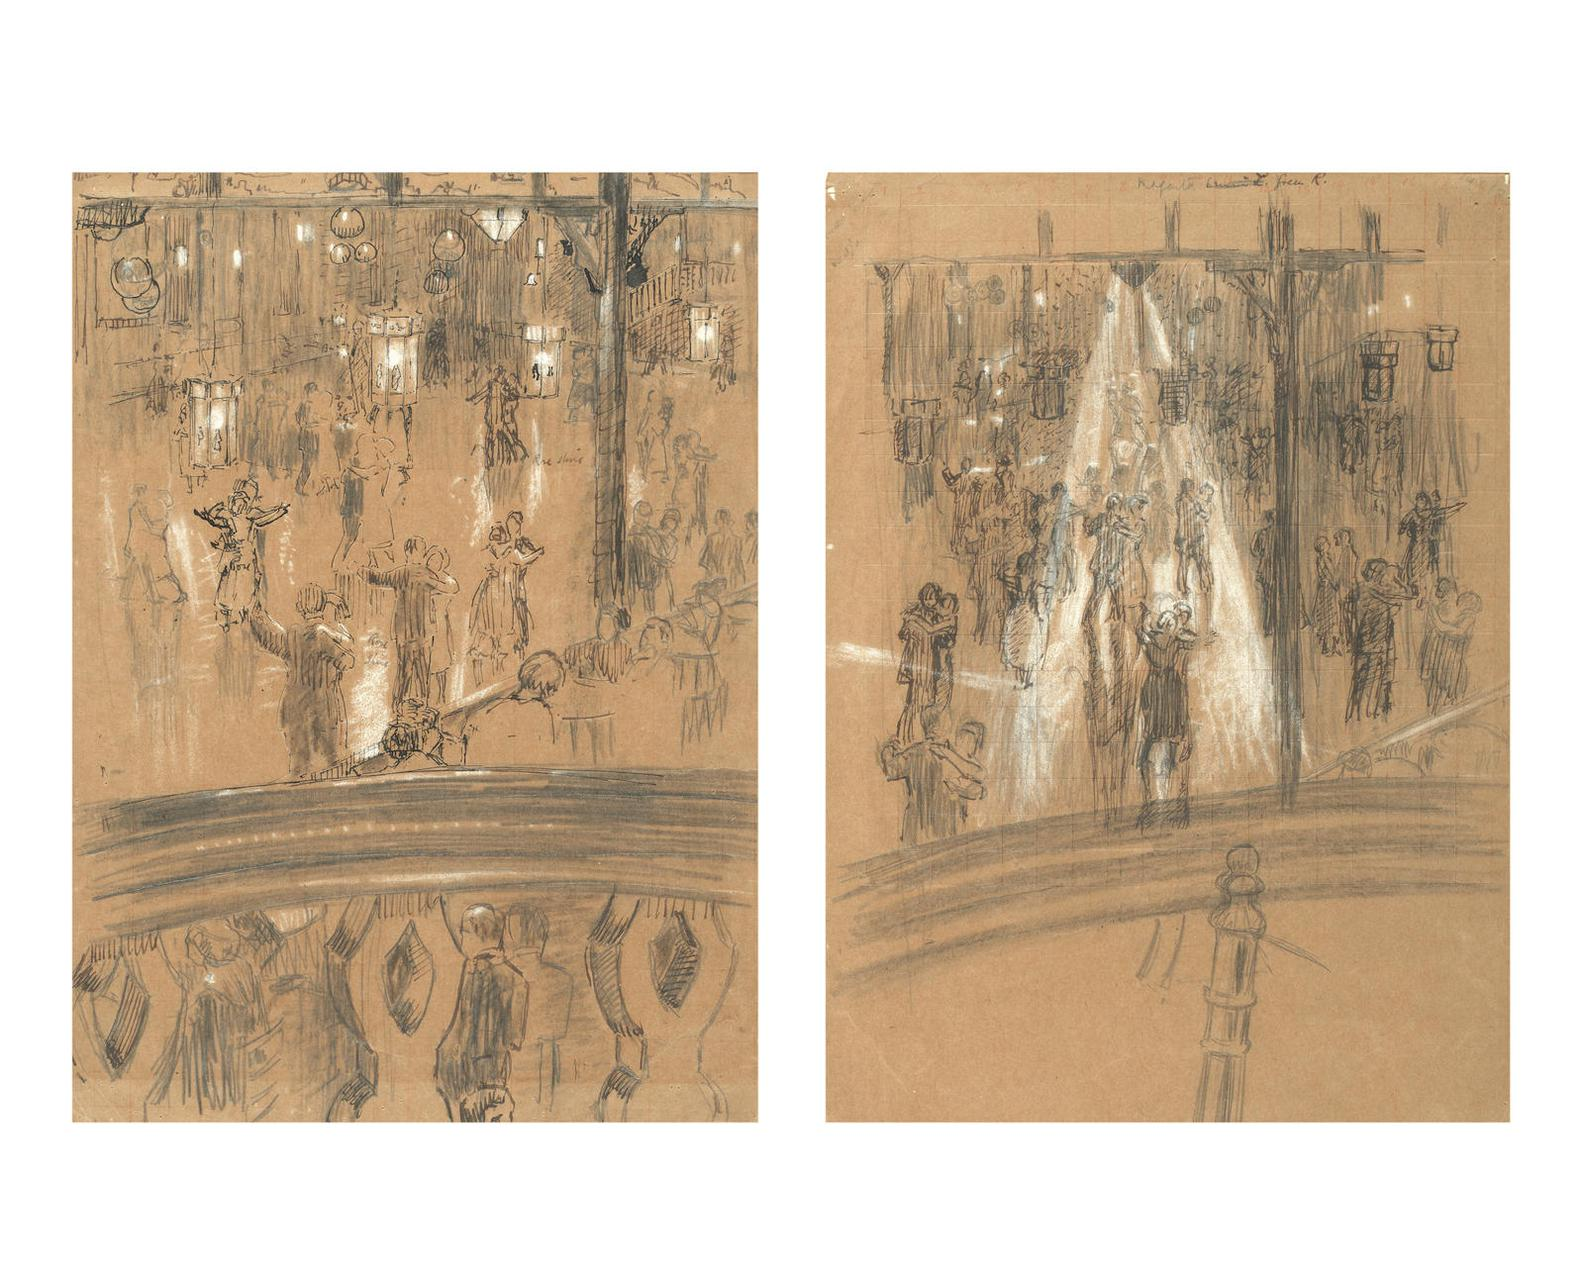 Malcolm Drummond - Studies For The Palais De Danse And Limelight Nights-1920